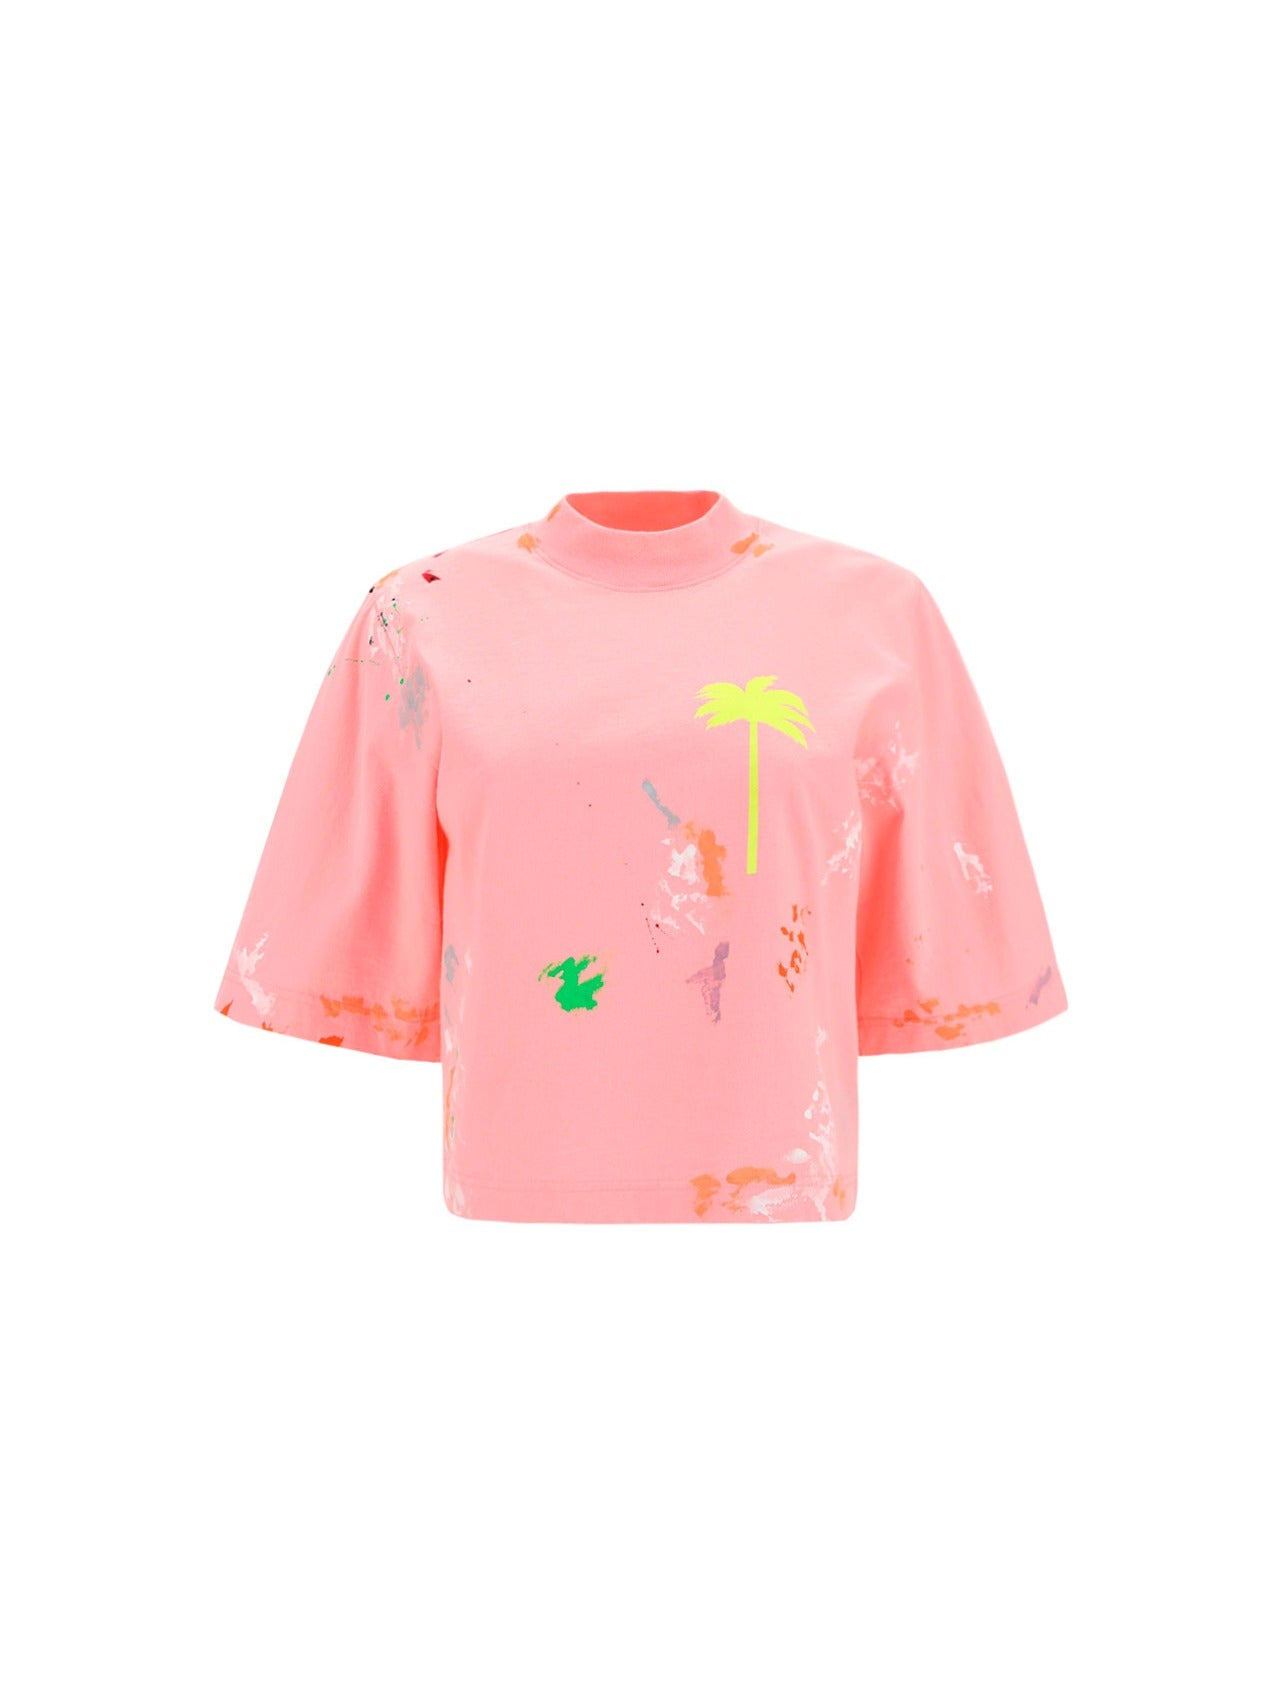 Palm Angels Cottons PALM ANGELS PALM TREE CROPPED T